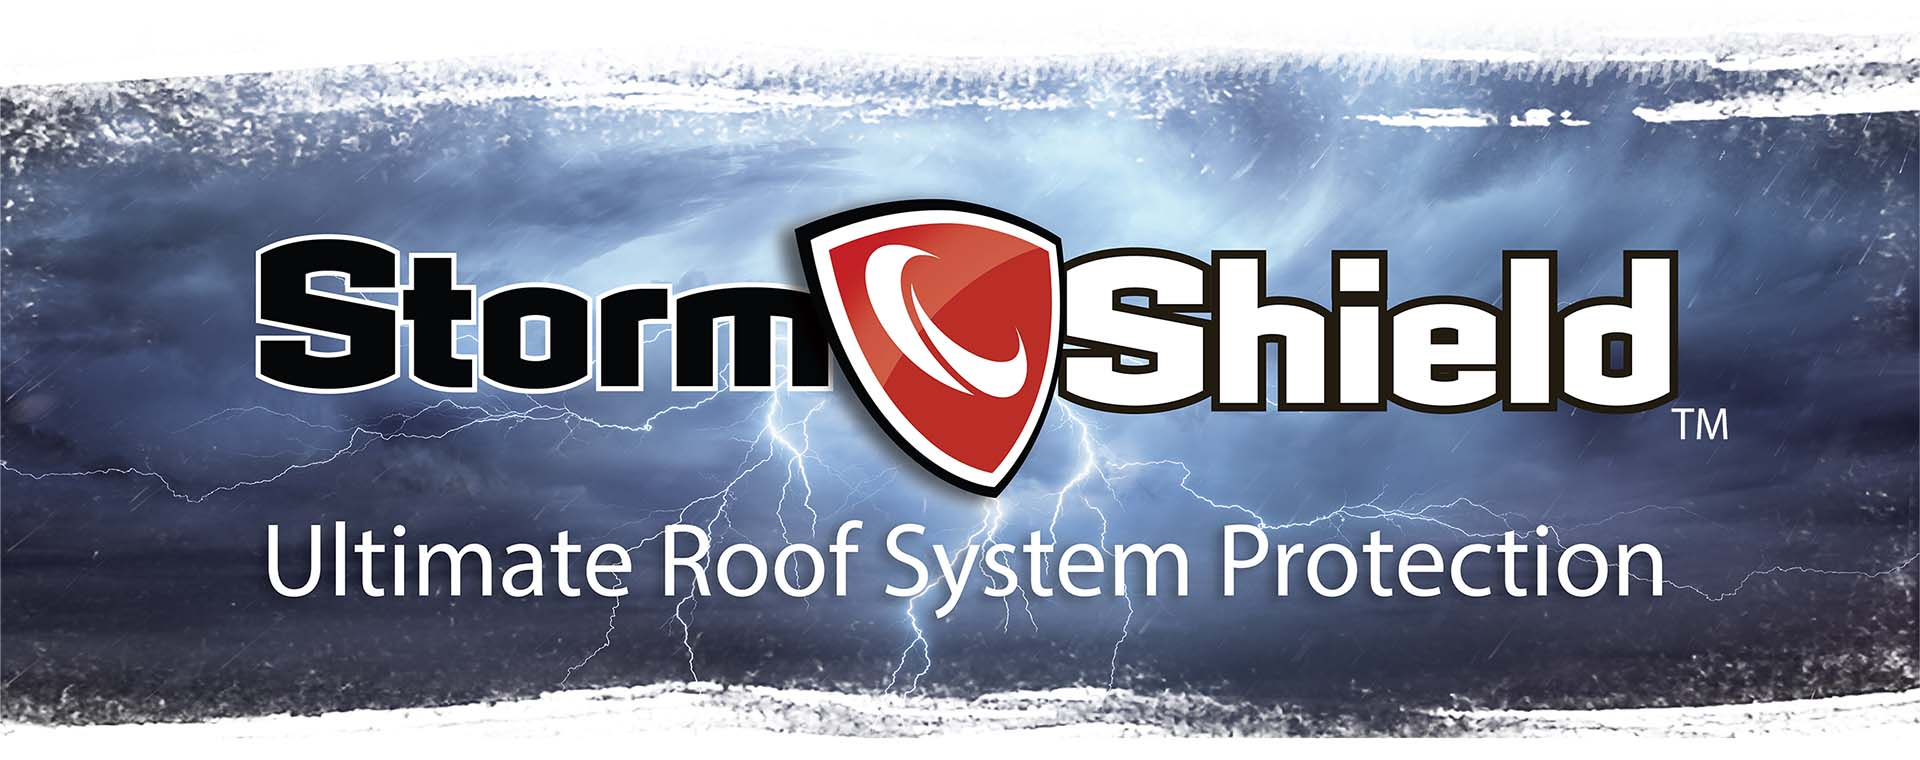 StormShield™ By Coryell Roofing